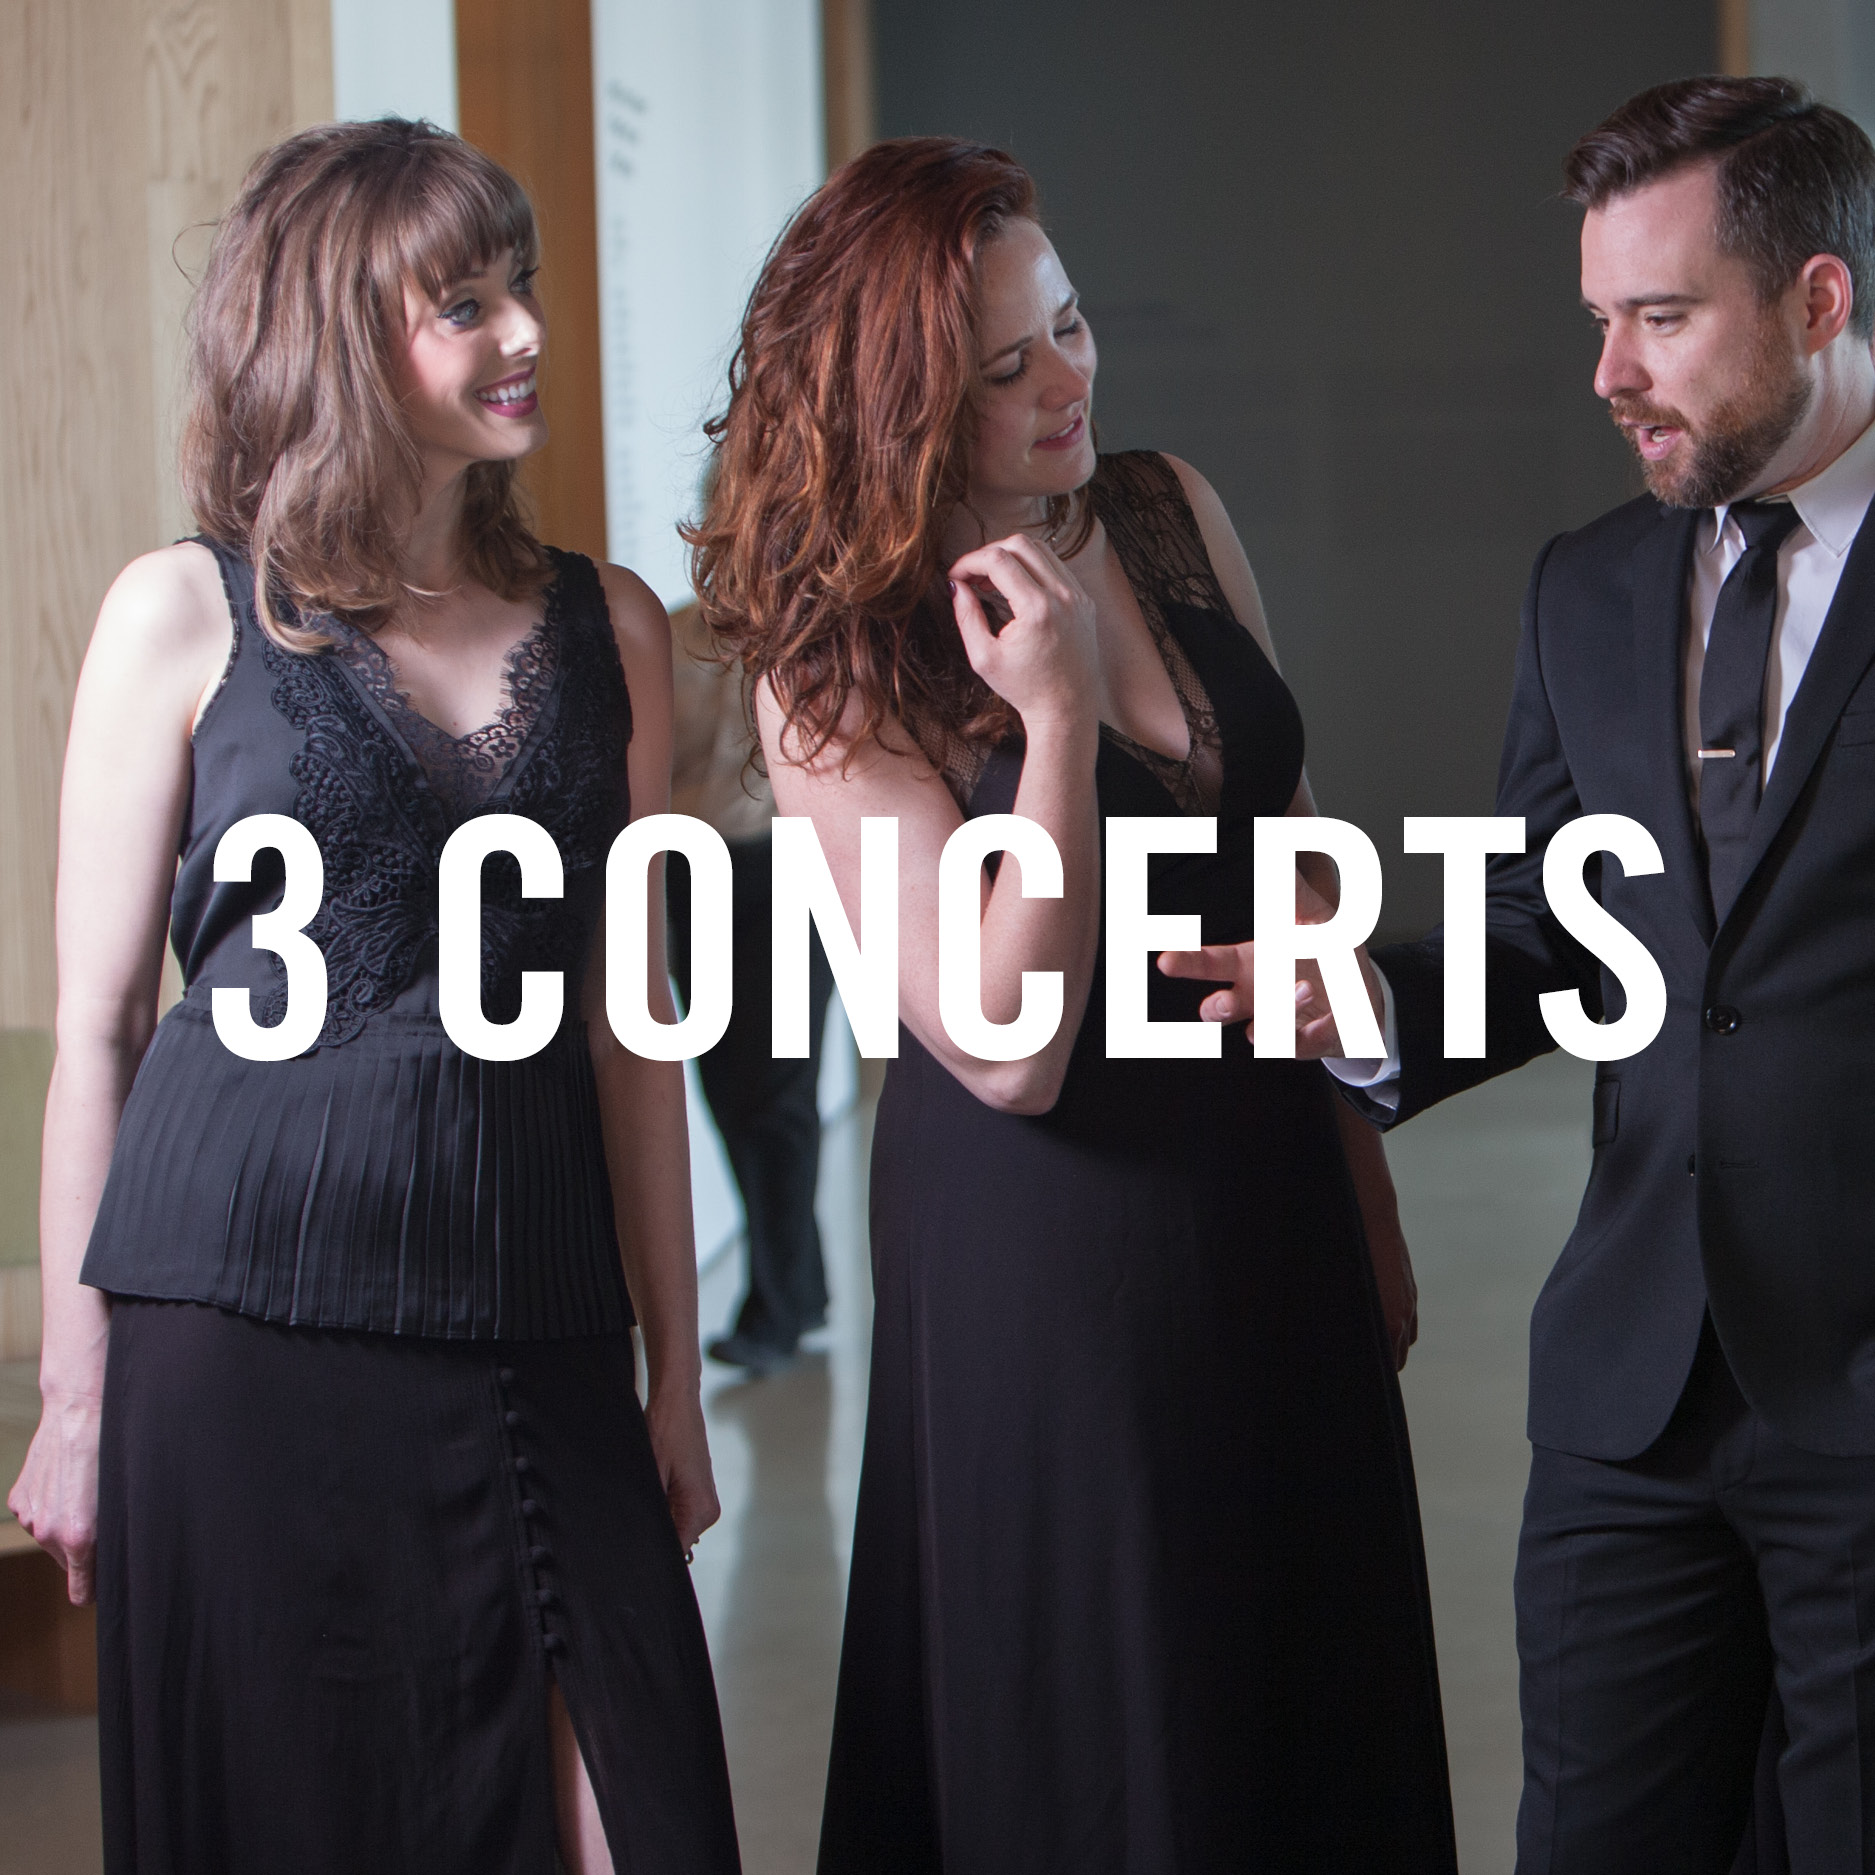 3 Concerts